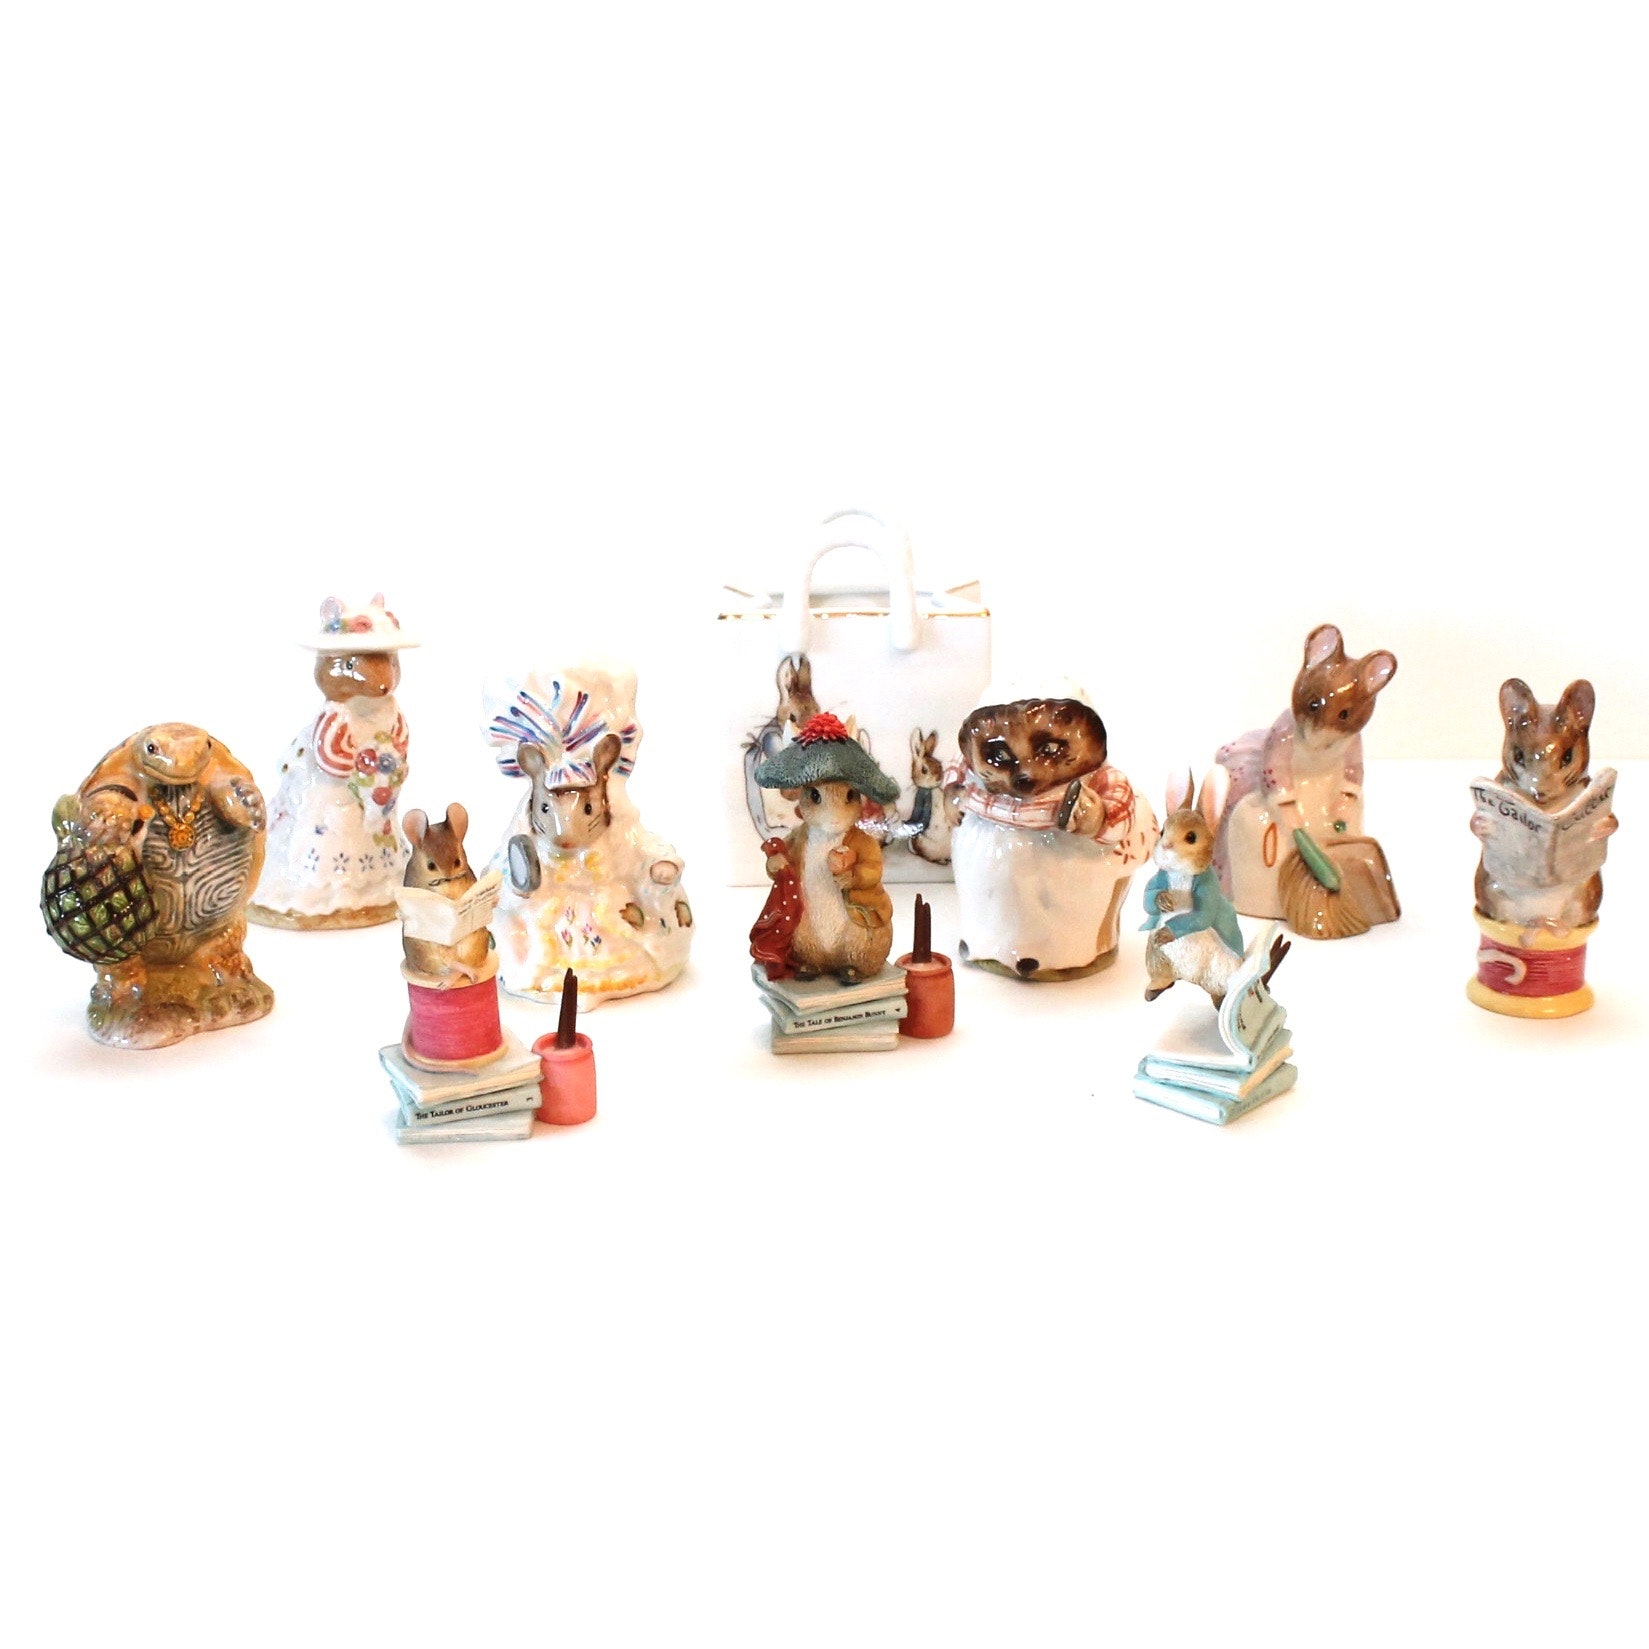 Beatrix Potter Figurines Including Beswick, Royal Doulton, Royal Albert, F. W.